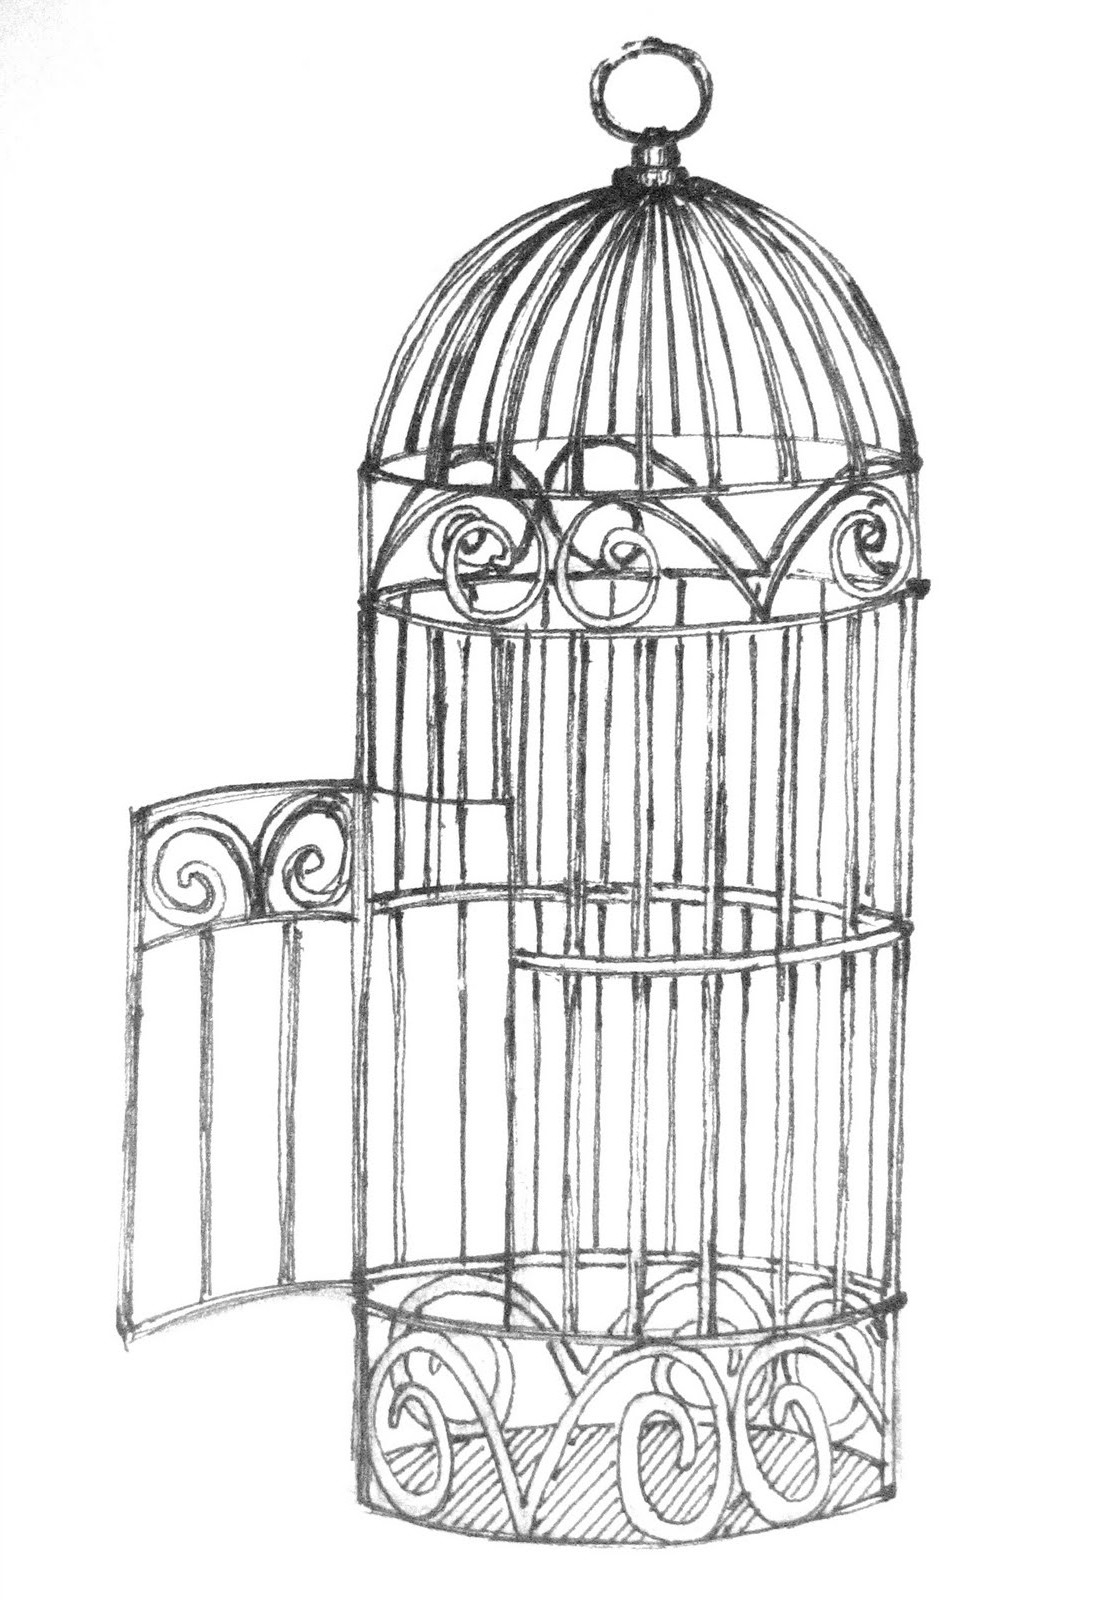 Drawn birdcage Bird dogs animals cats and